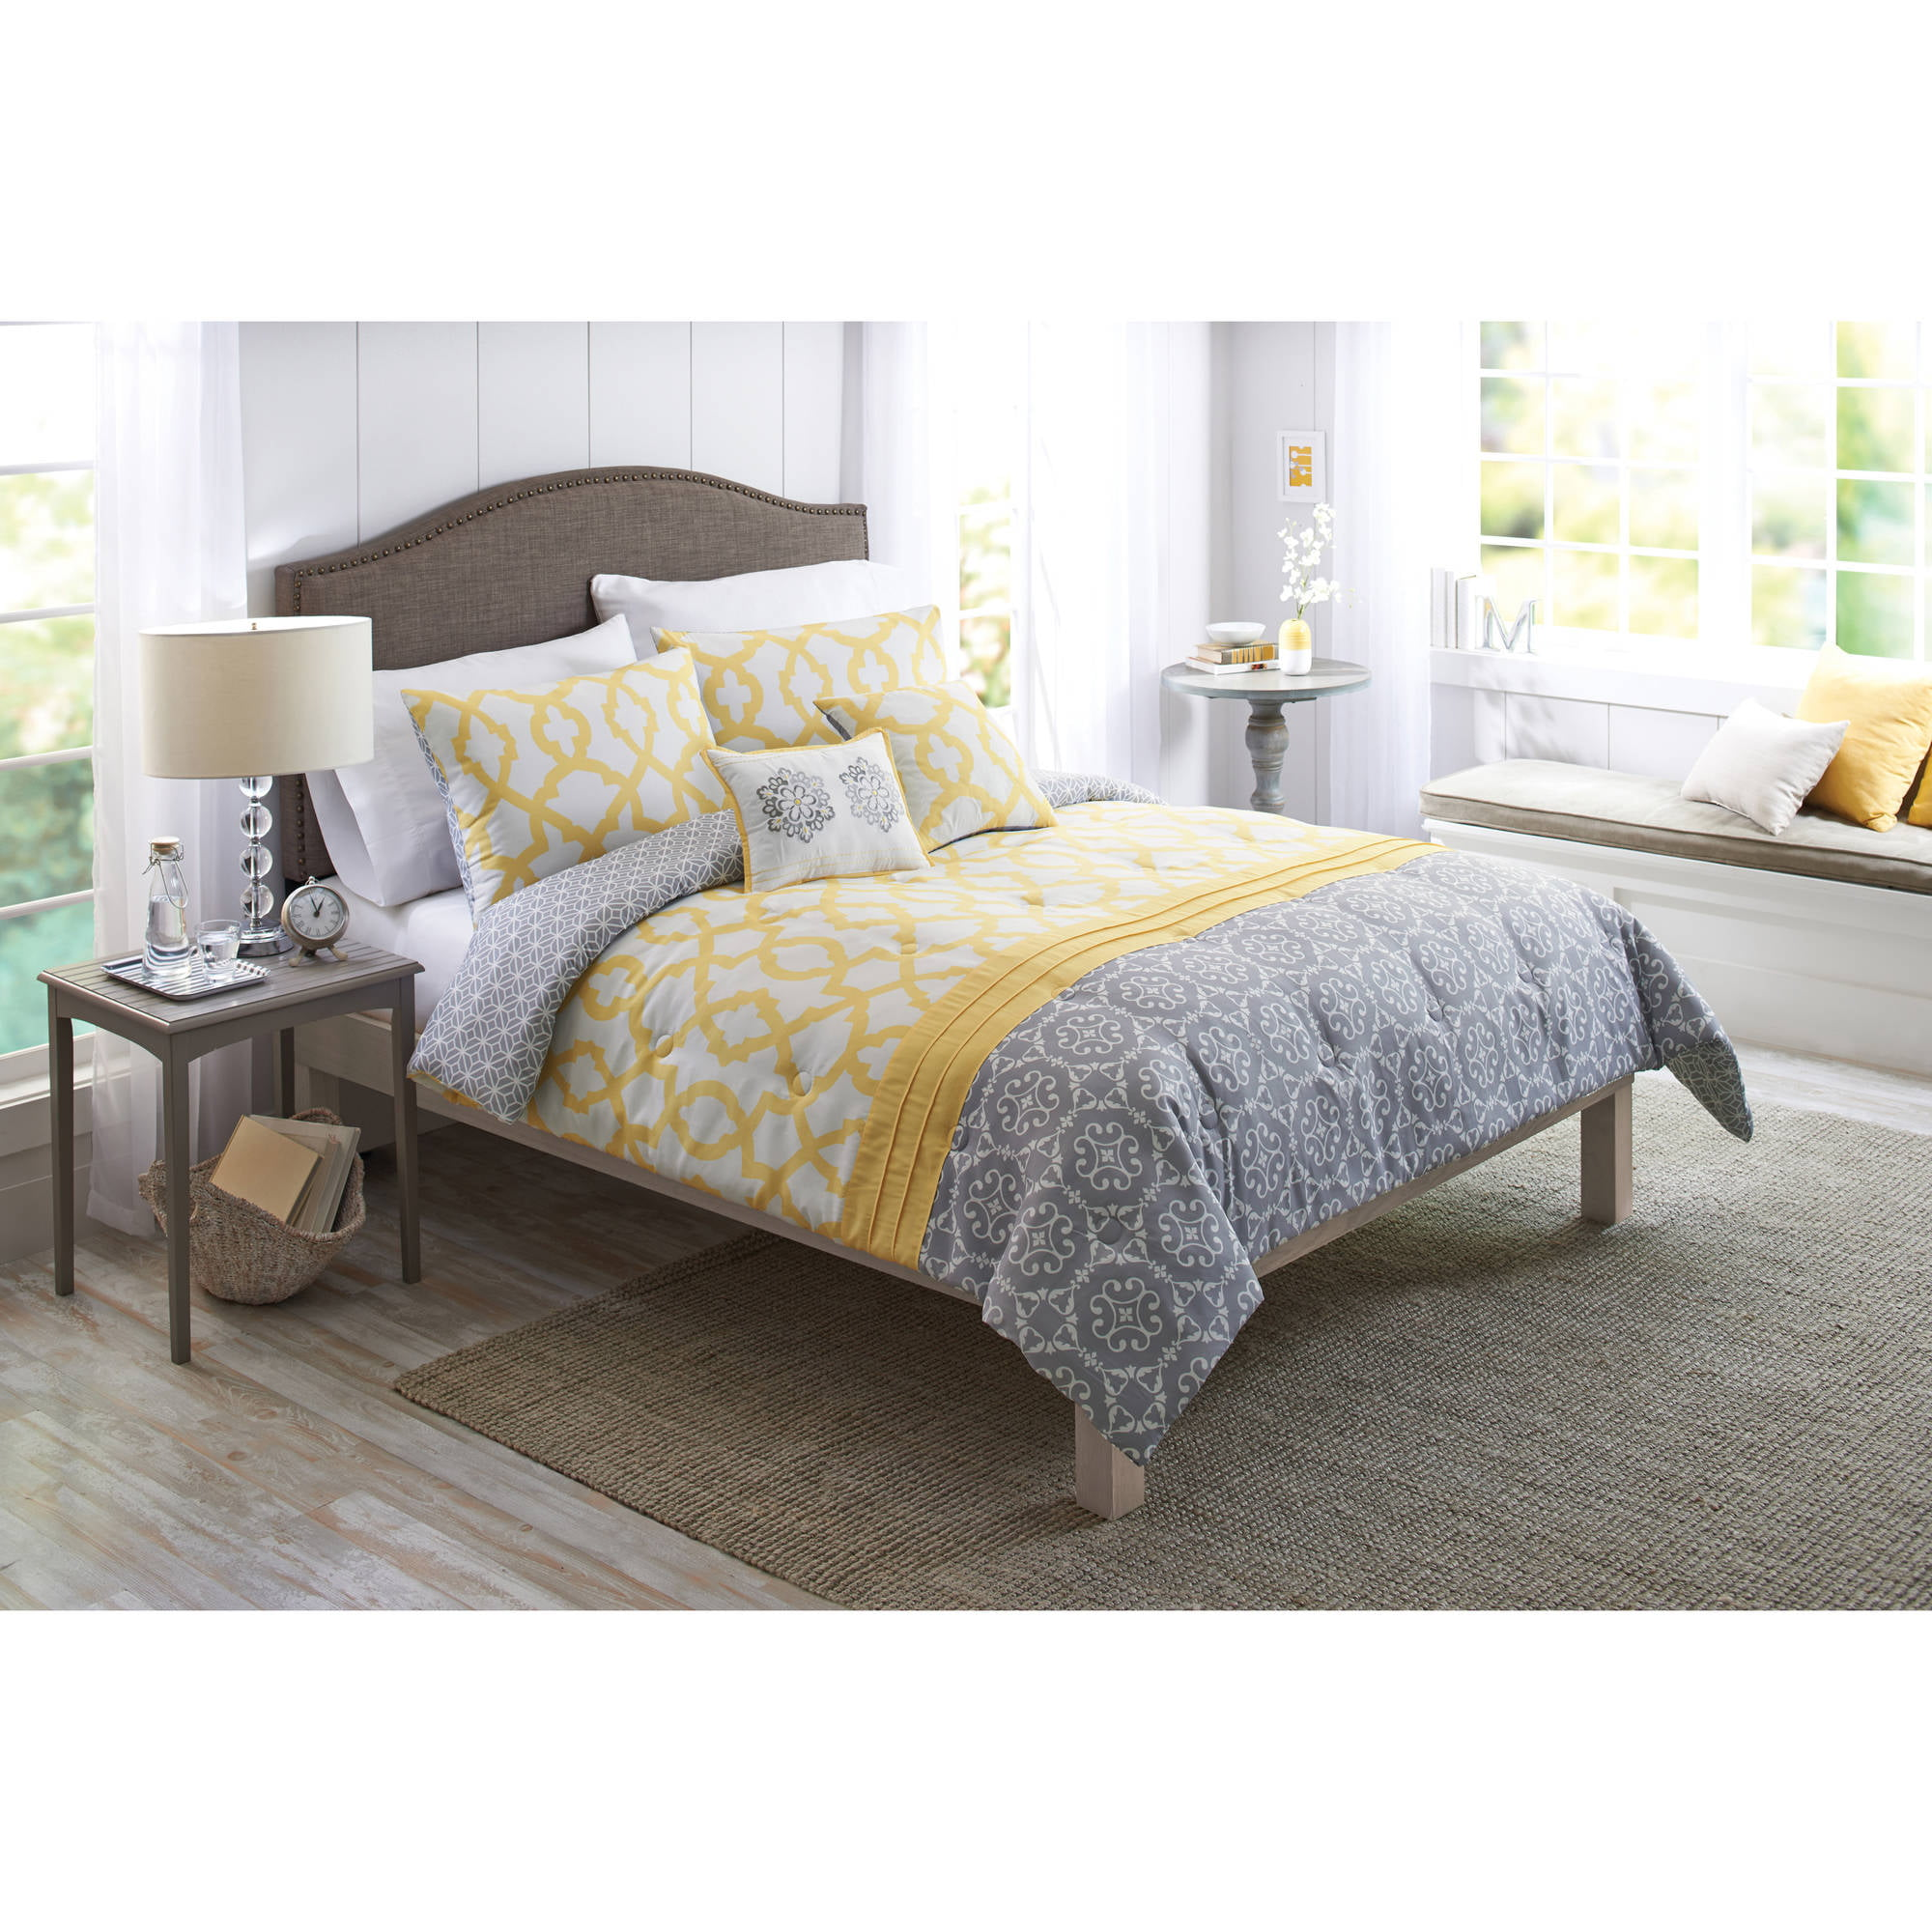 better homes and gardens yellow and gray medallion piece bedding  - better homes and gardens yellow and gray medallion piece beddingcomforter set  walmartcom